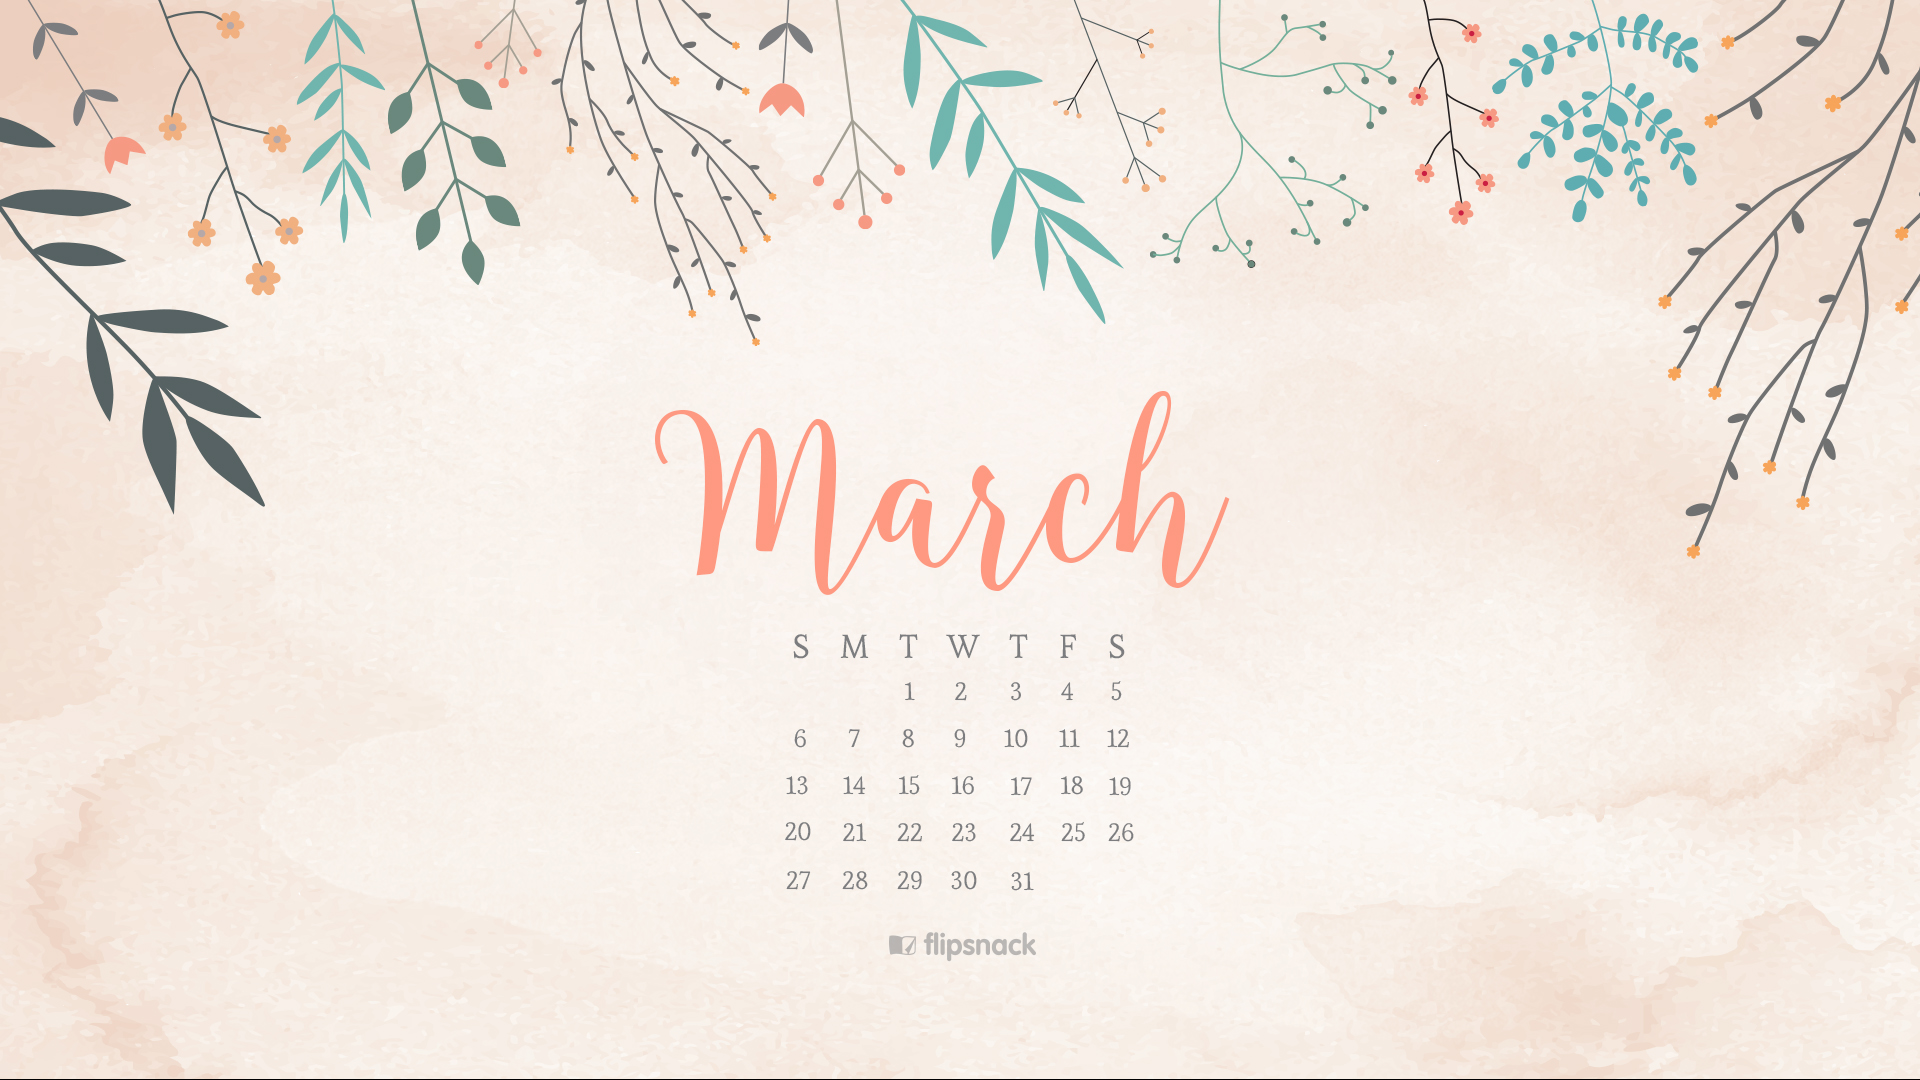 March 2016 Free Calendar Wallpaper Desktop Background